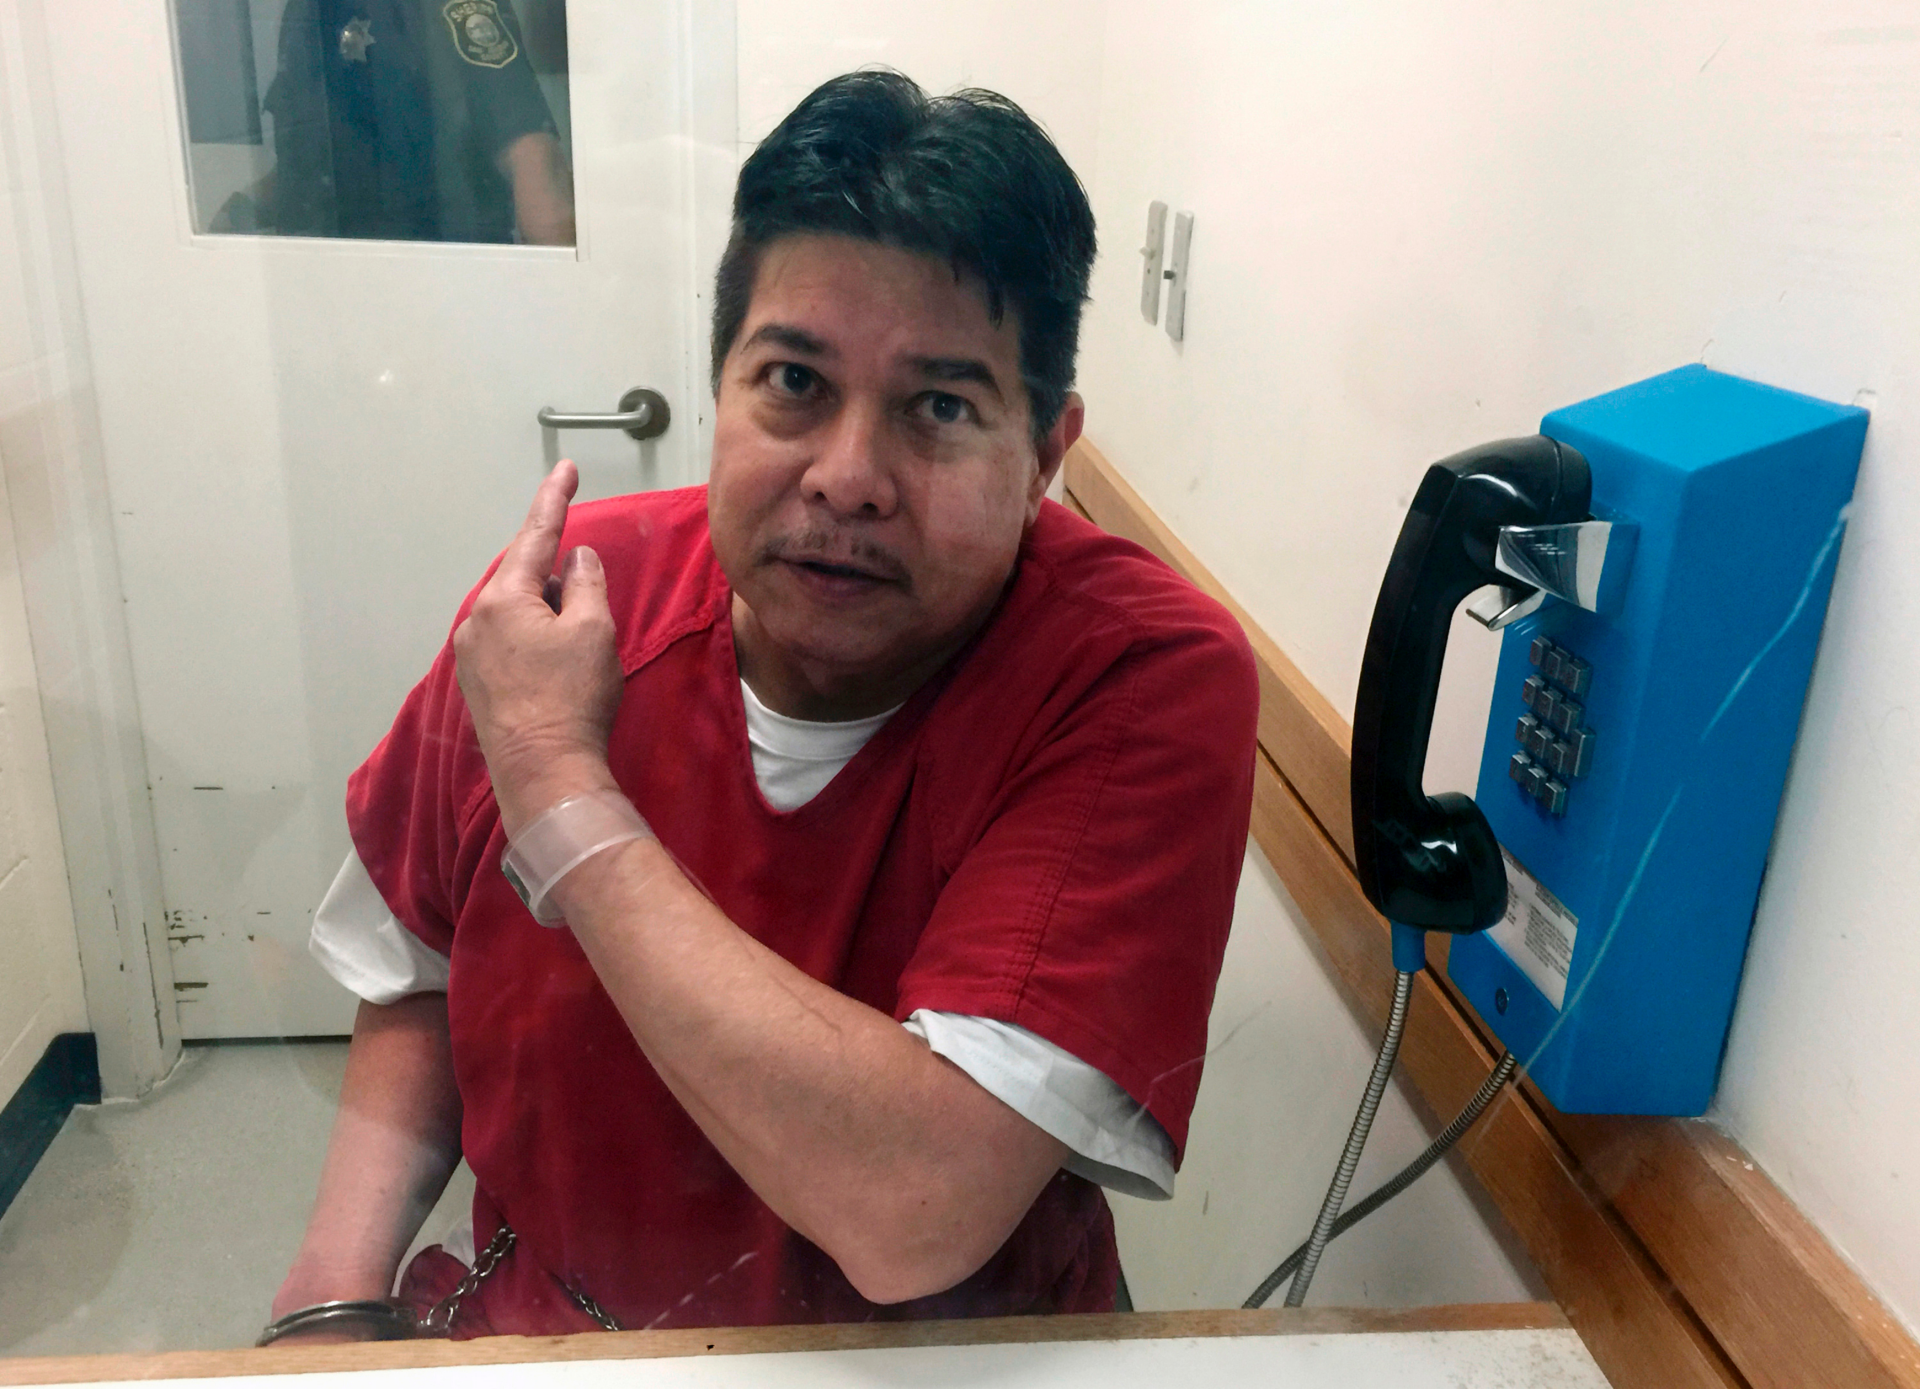 Hawaii trial set for psychiatric patient charged in escape